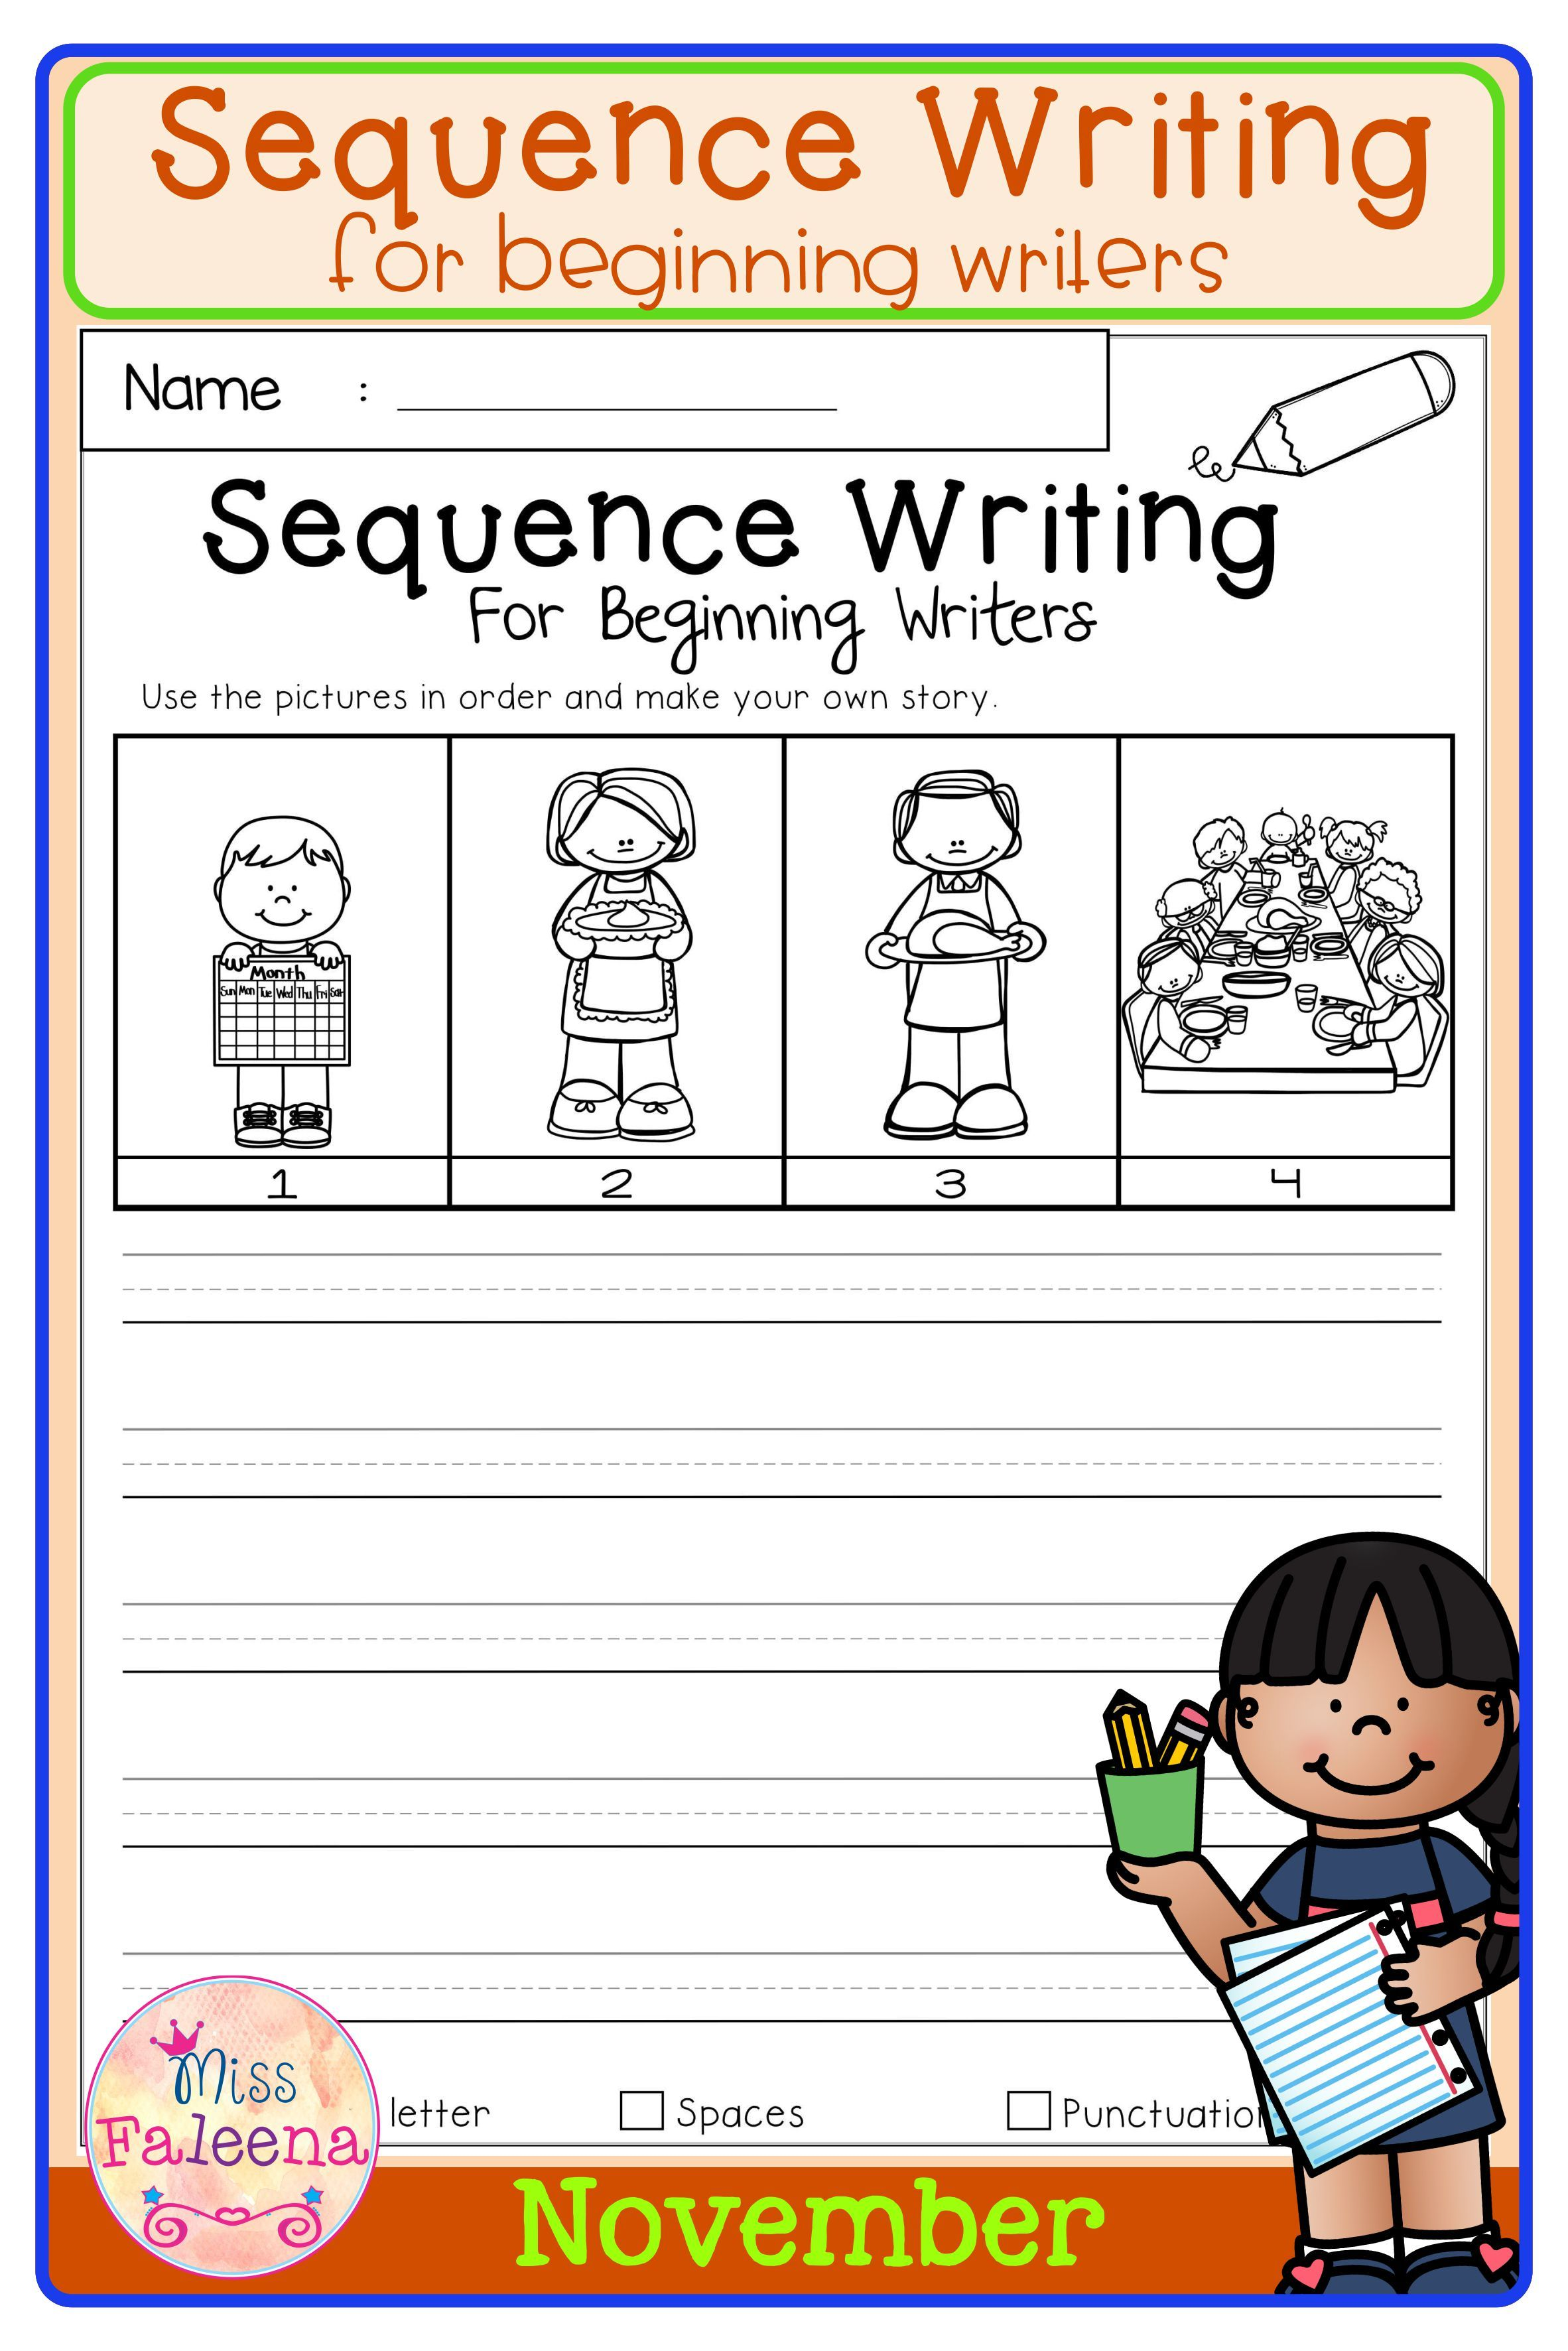 November Sequence Writing For Beginning Writers Teaching Writing Sequence Writing Elementary Curriculum [ 3544 x 2364 Pixel ]